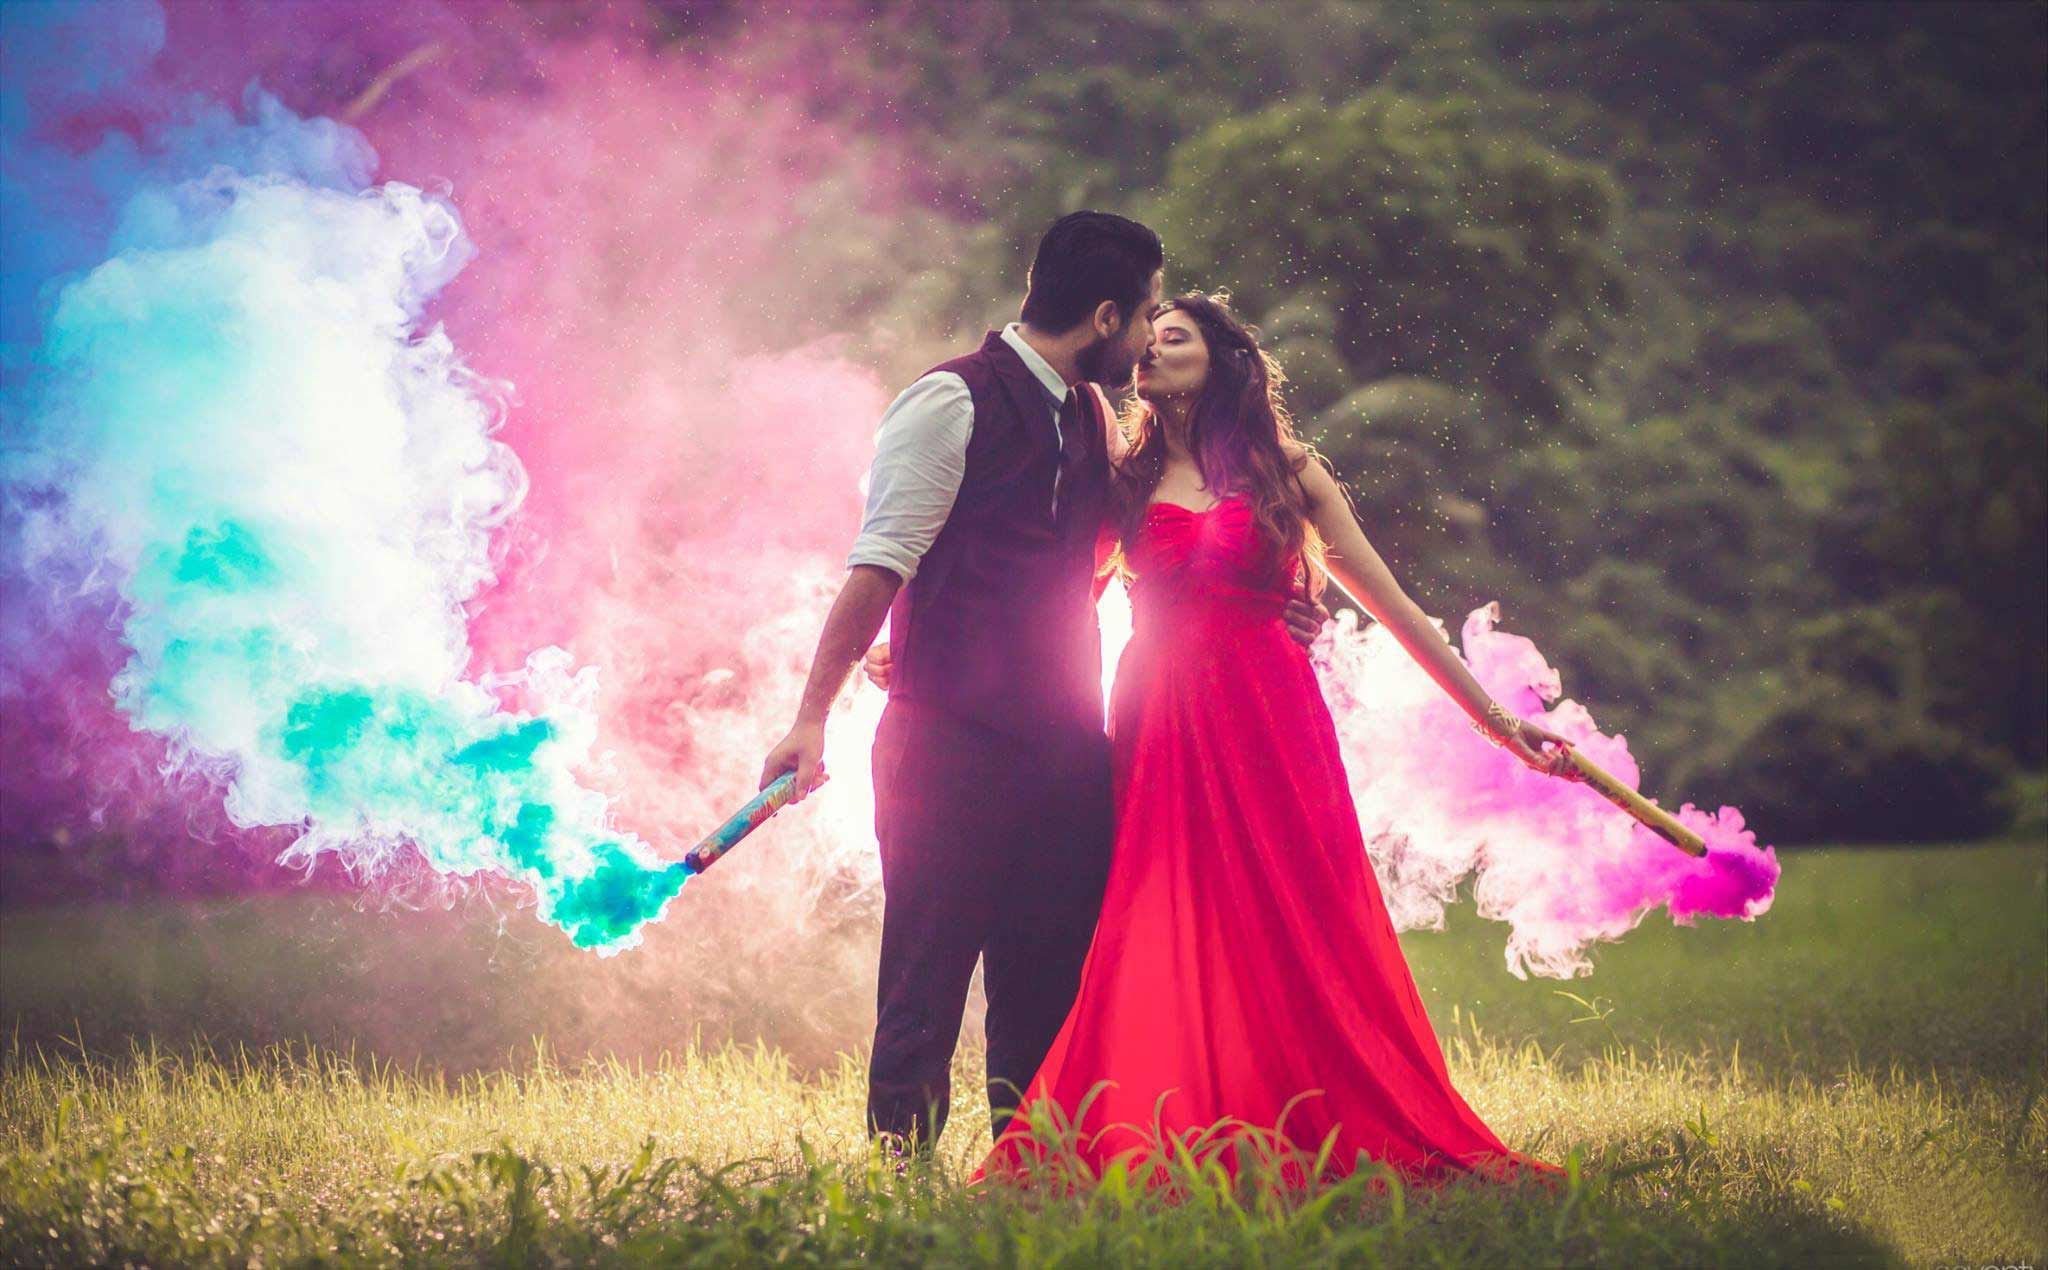 These 10 Viral Images Give You an Idea for Your Pre-Wedding Shoot  Live Enhanced